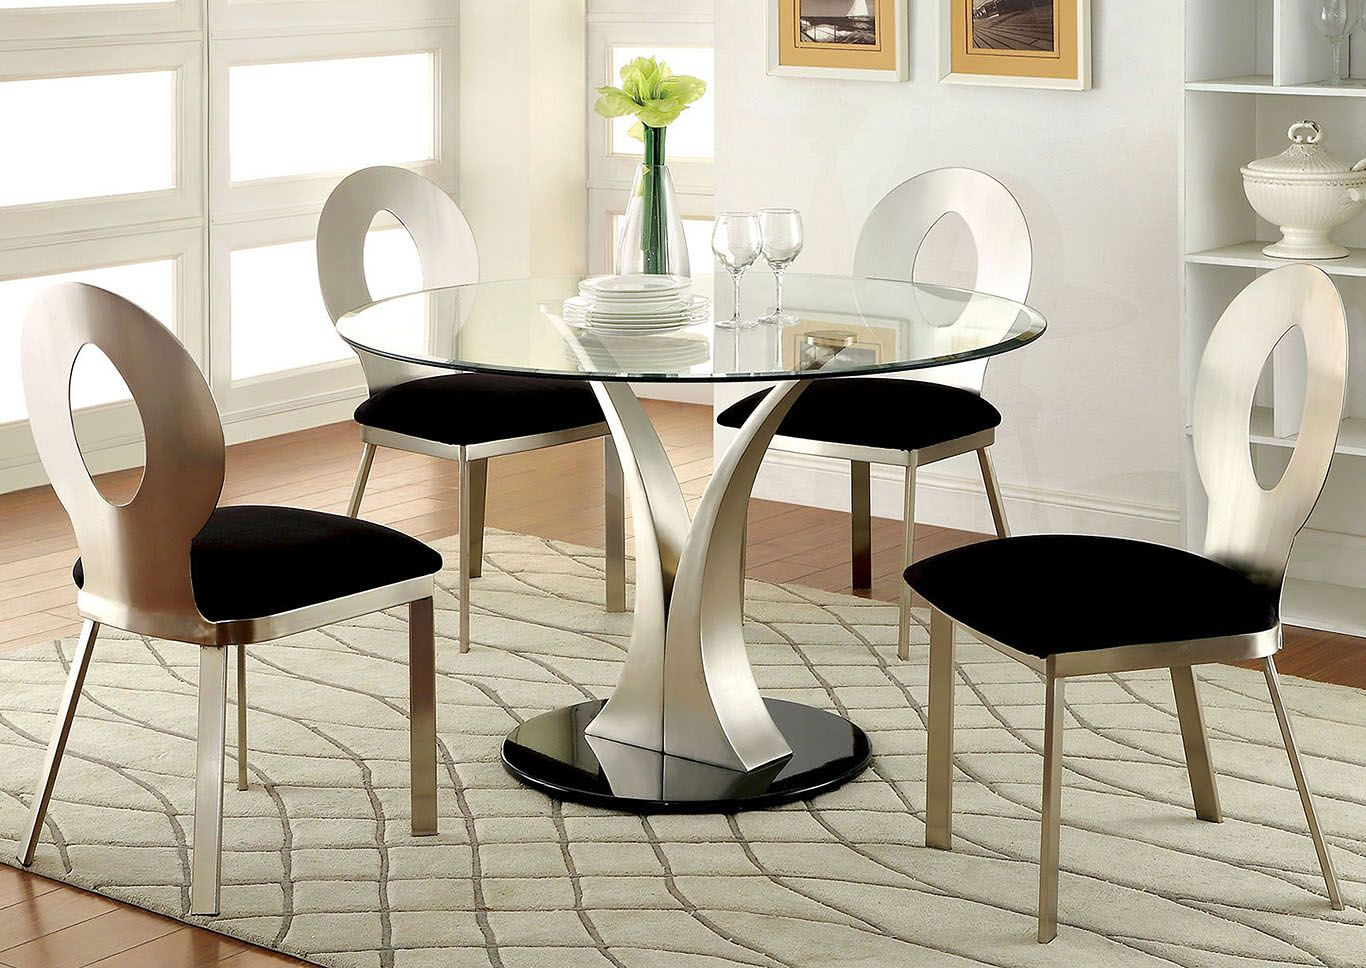 14 Good 3 Piece Stainless Steel Counter Set In Dining Room Design